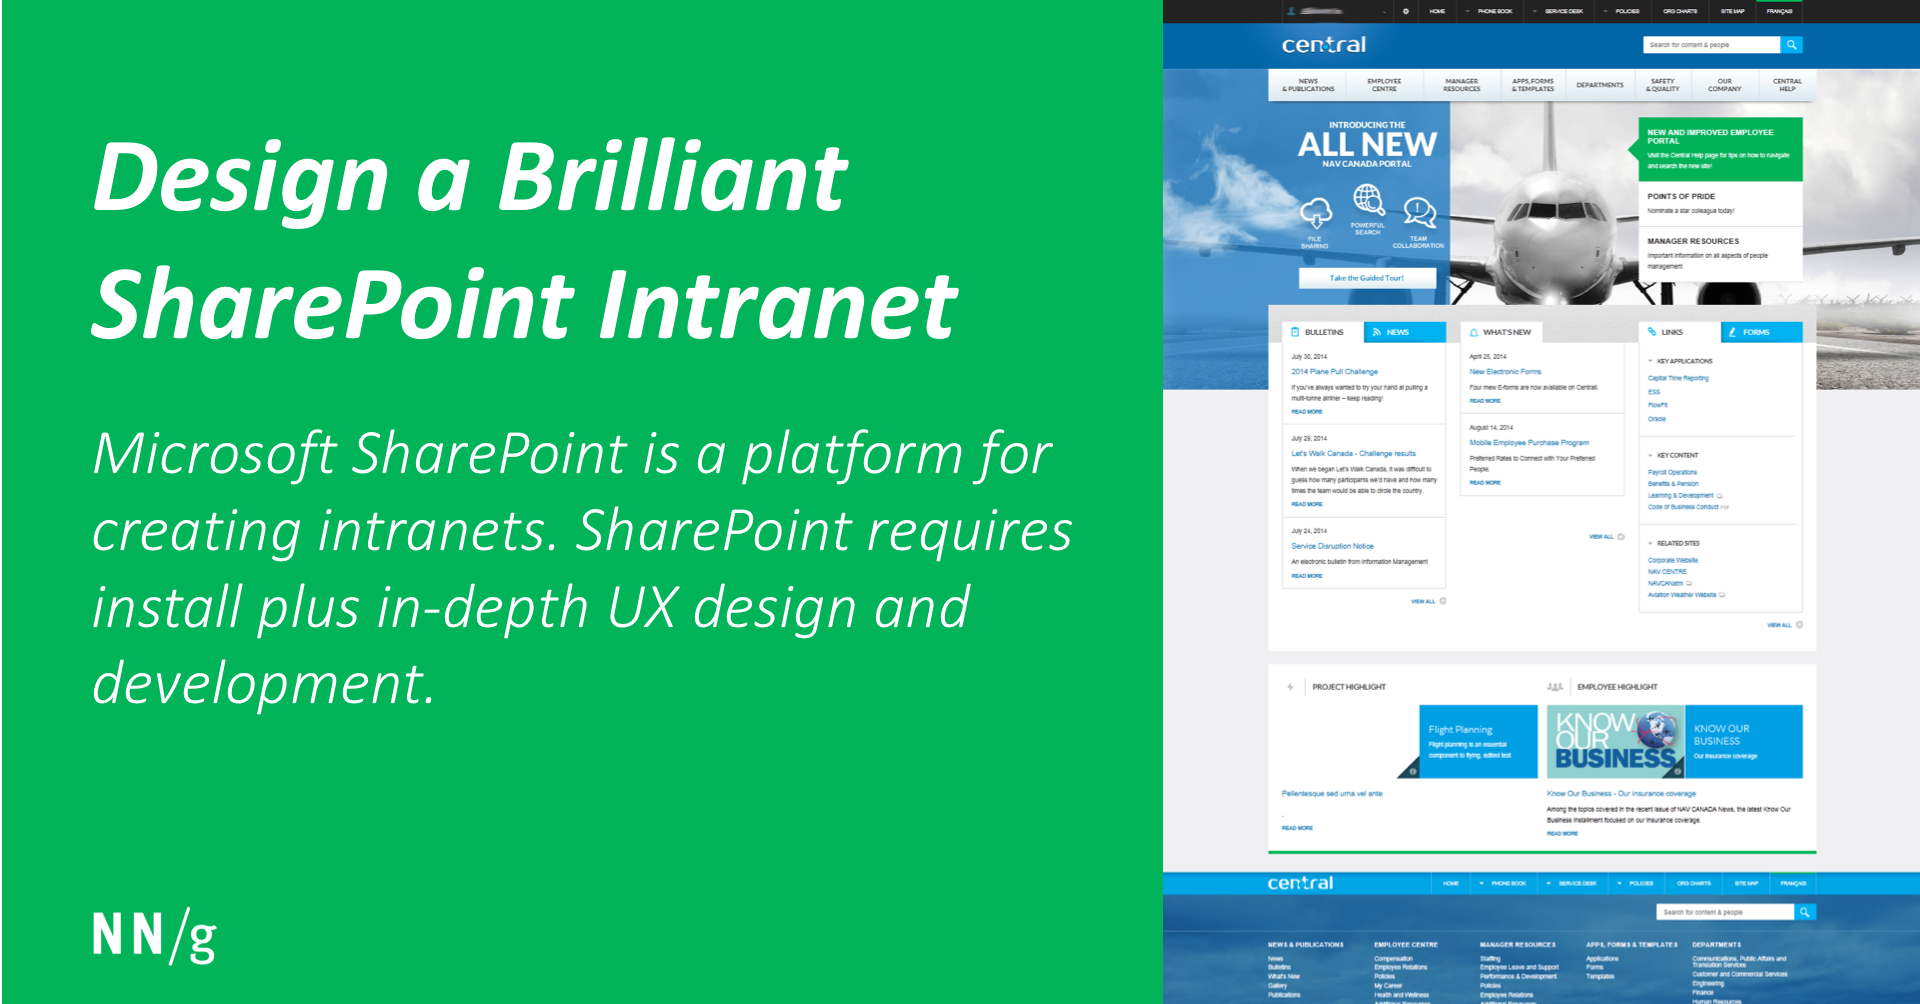 Design A Brilliant Sharepoint Intranet,Creative Cv Format For Graphic Designer